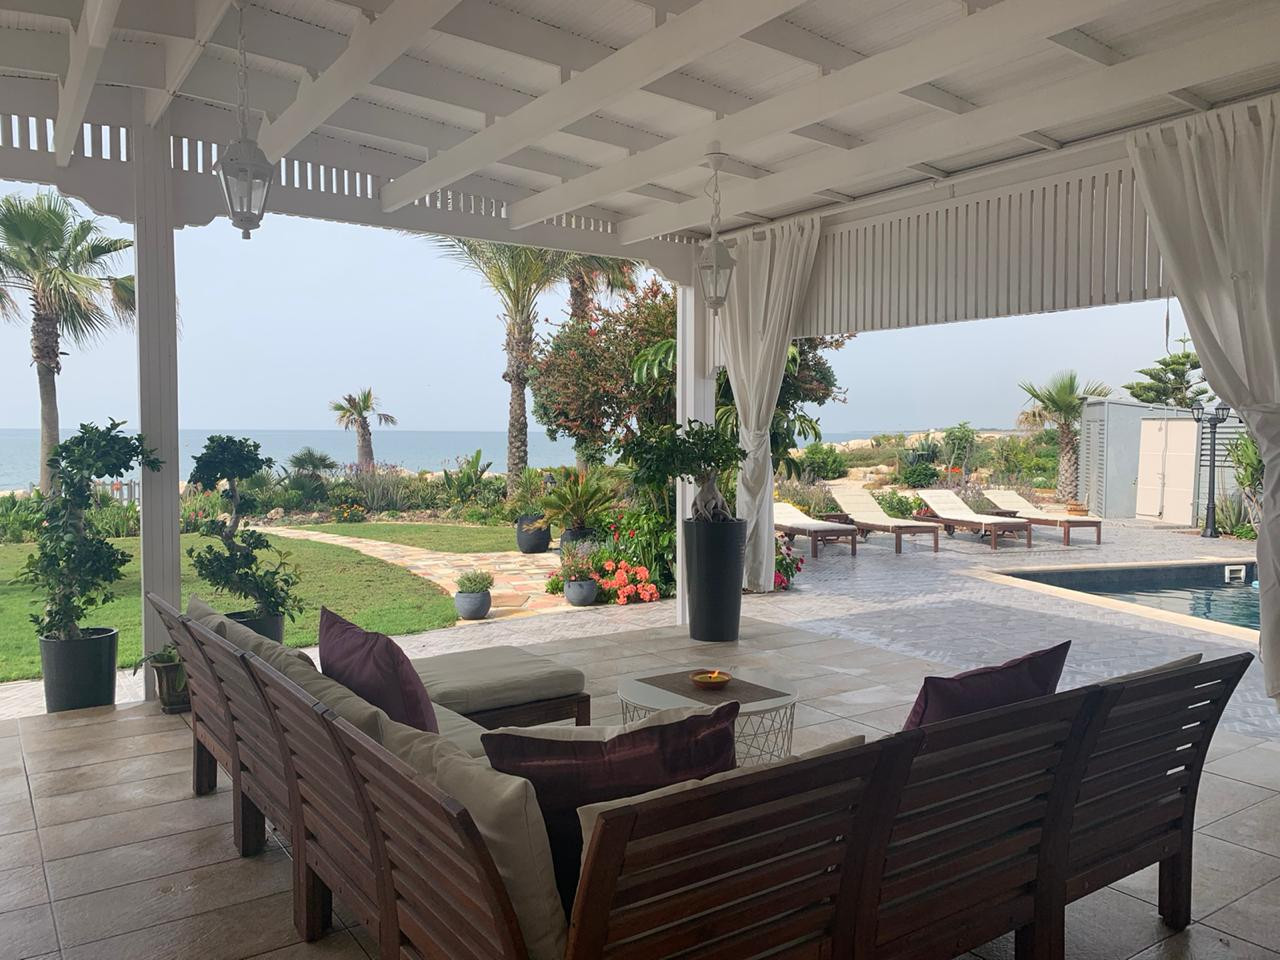 FC-29146: House (Detached) in Kiti, Larnaca for Sale - #2